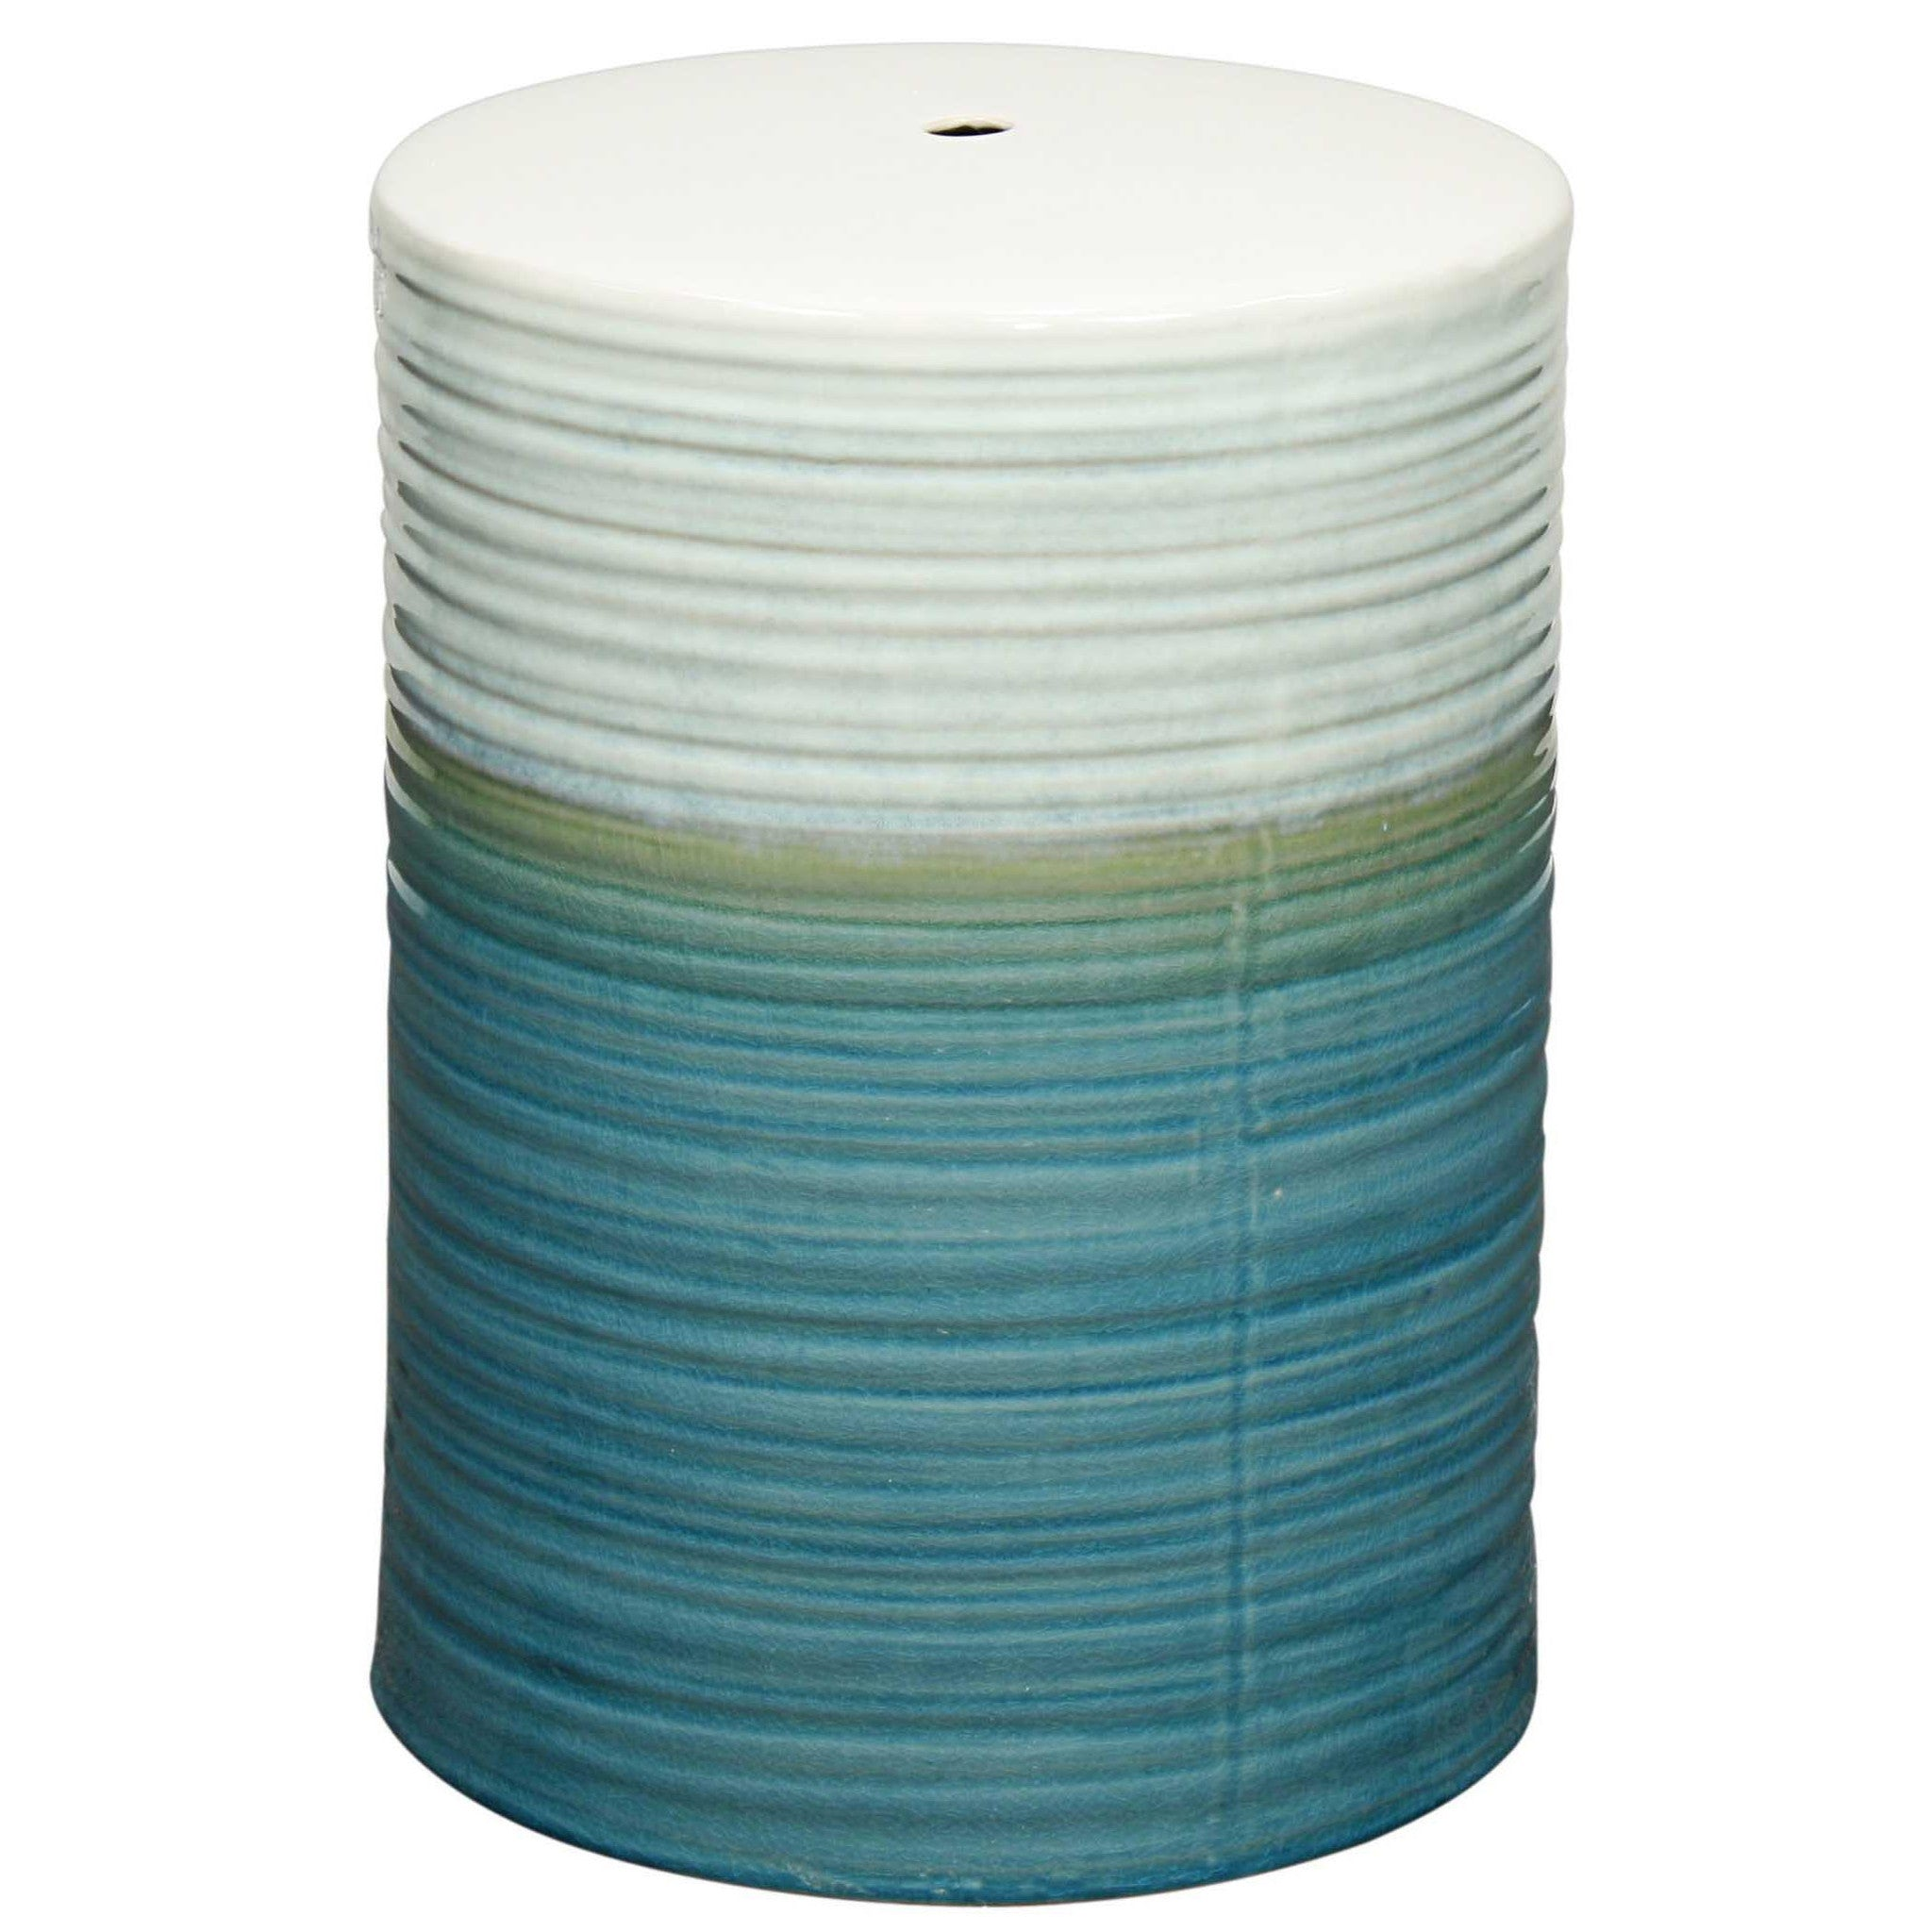 Potter Ceramic Garden Stool TURQUOISE. Will It Fit?